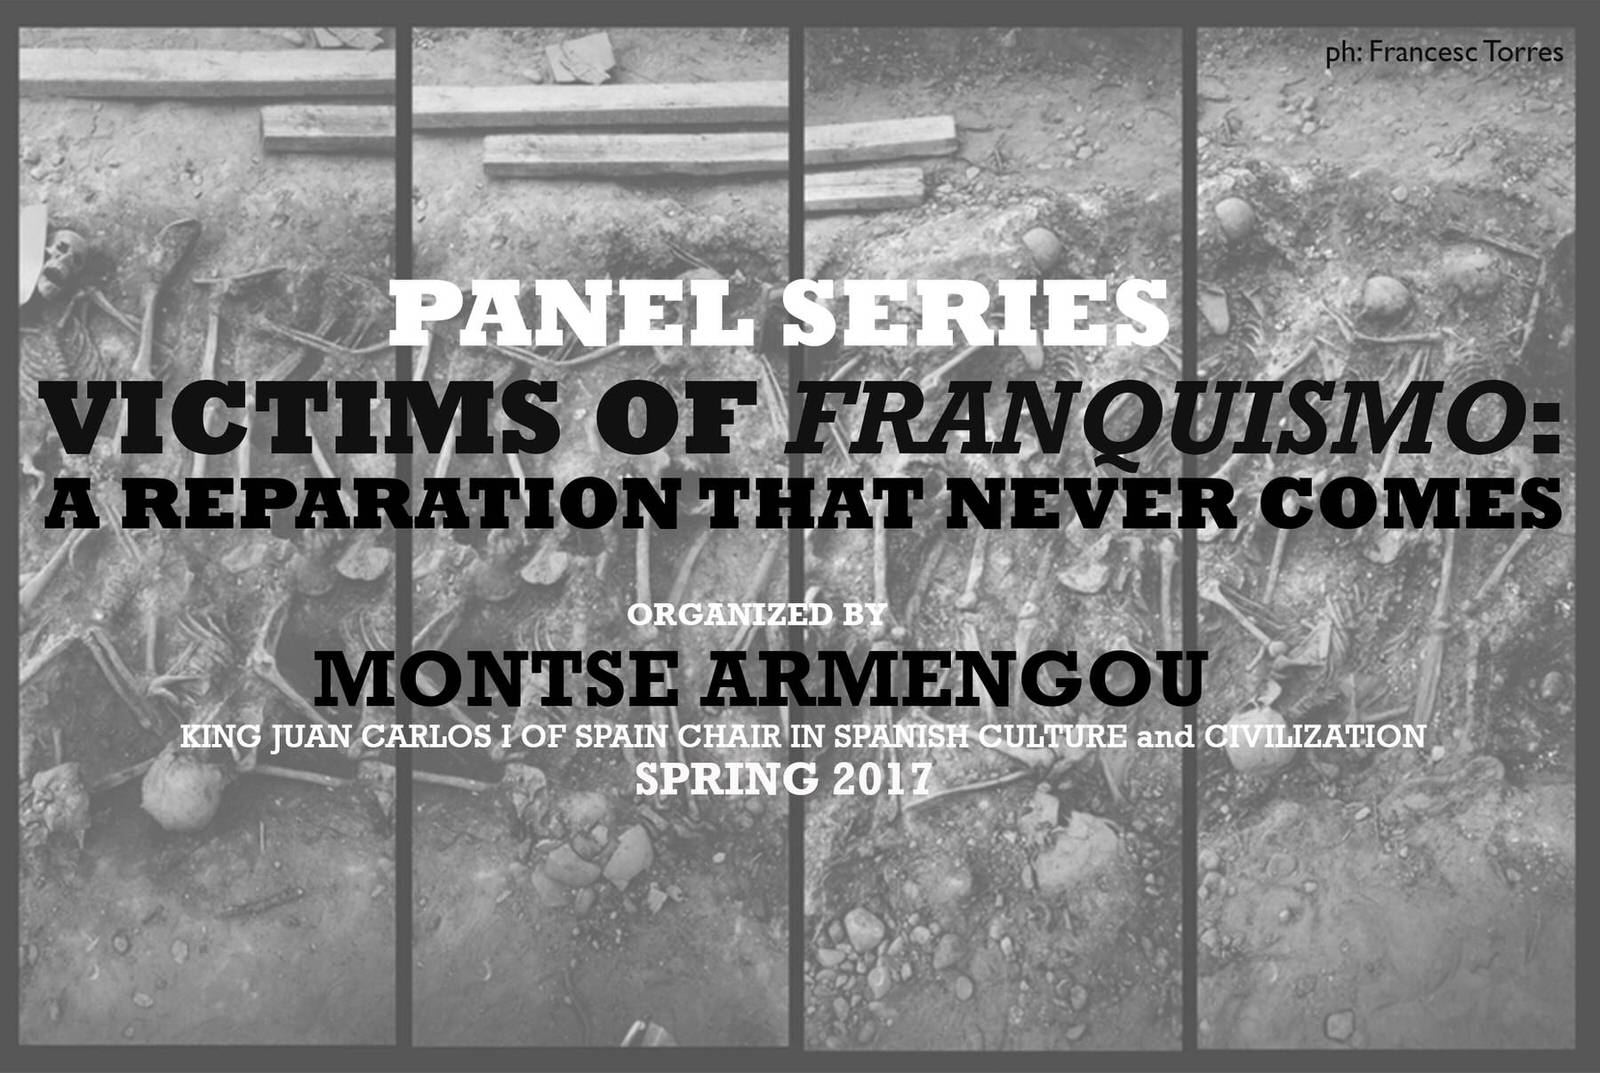 image from TUESDAY, MAY 2nd, 6:30pm | Panel 4 - Victims of Franquismo: A Reparation that Never Comes